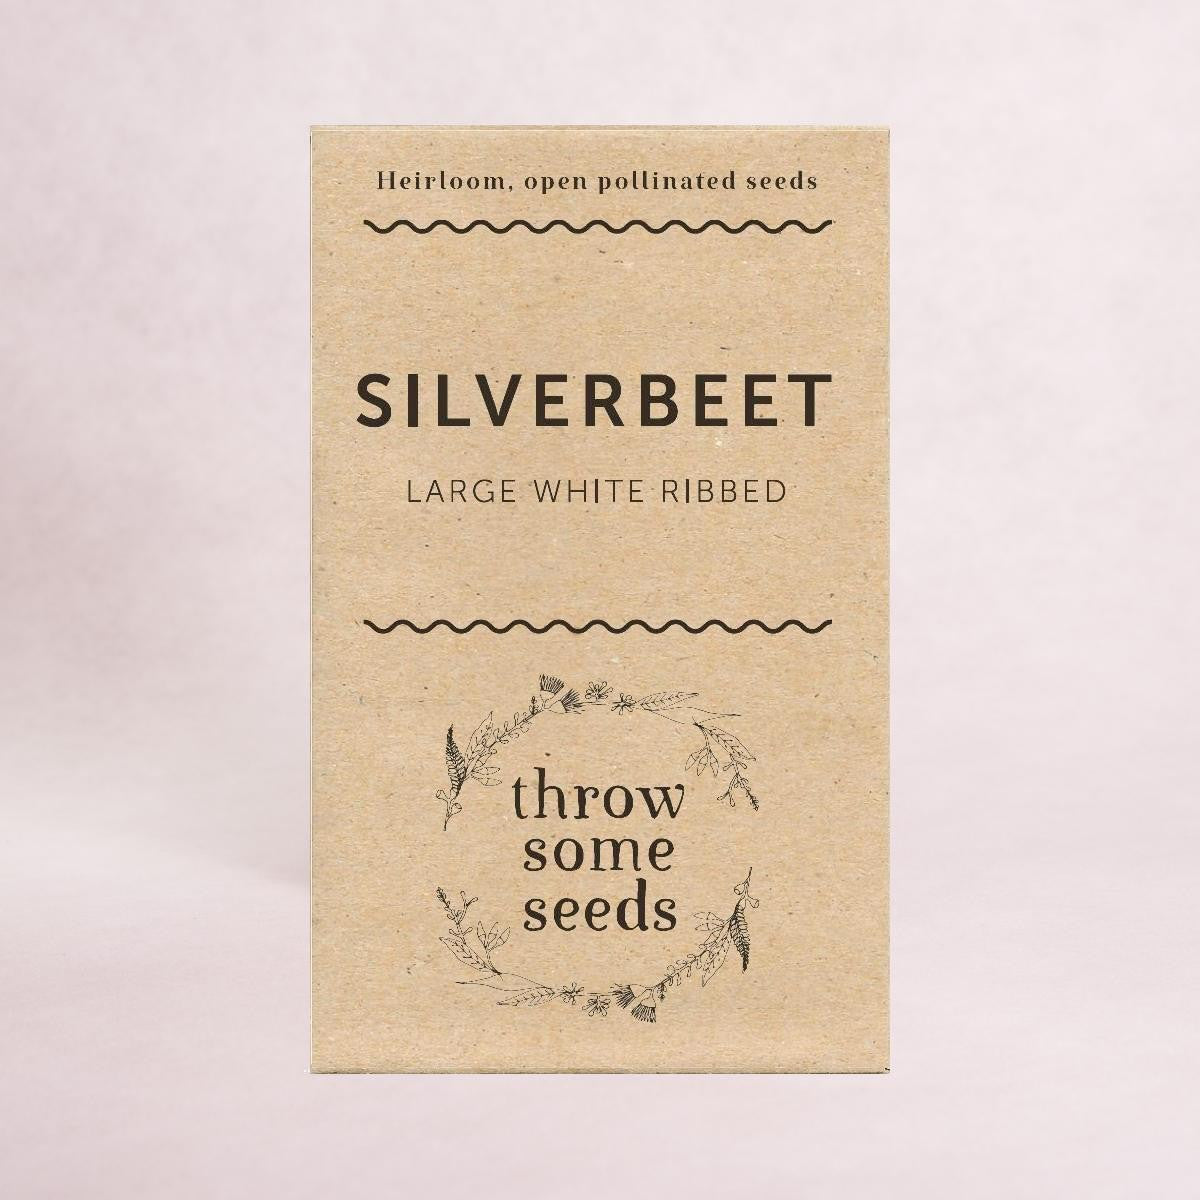 Silverbeet  (Large White Ribbed) - Heirloom Seeds - Throw Some Seeds